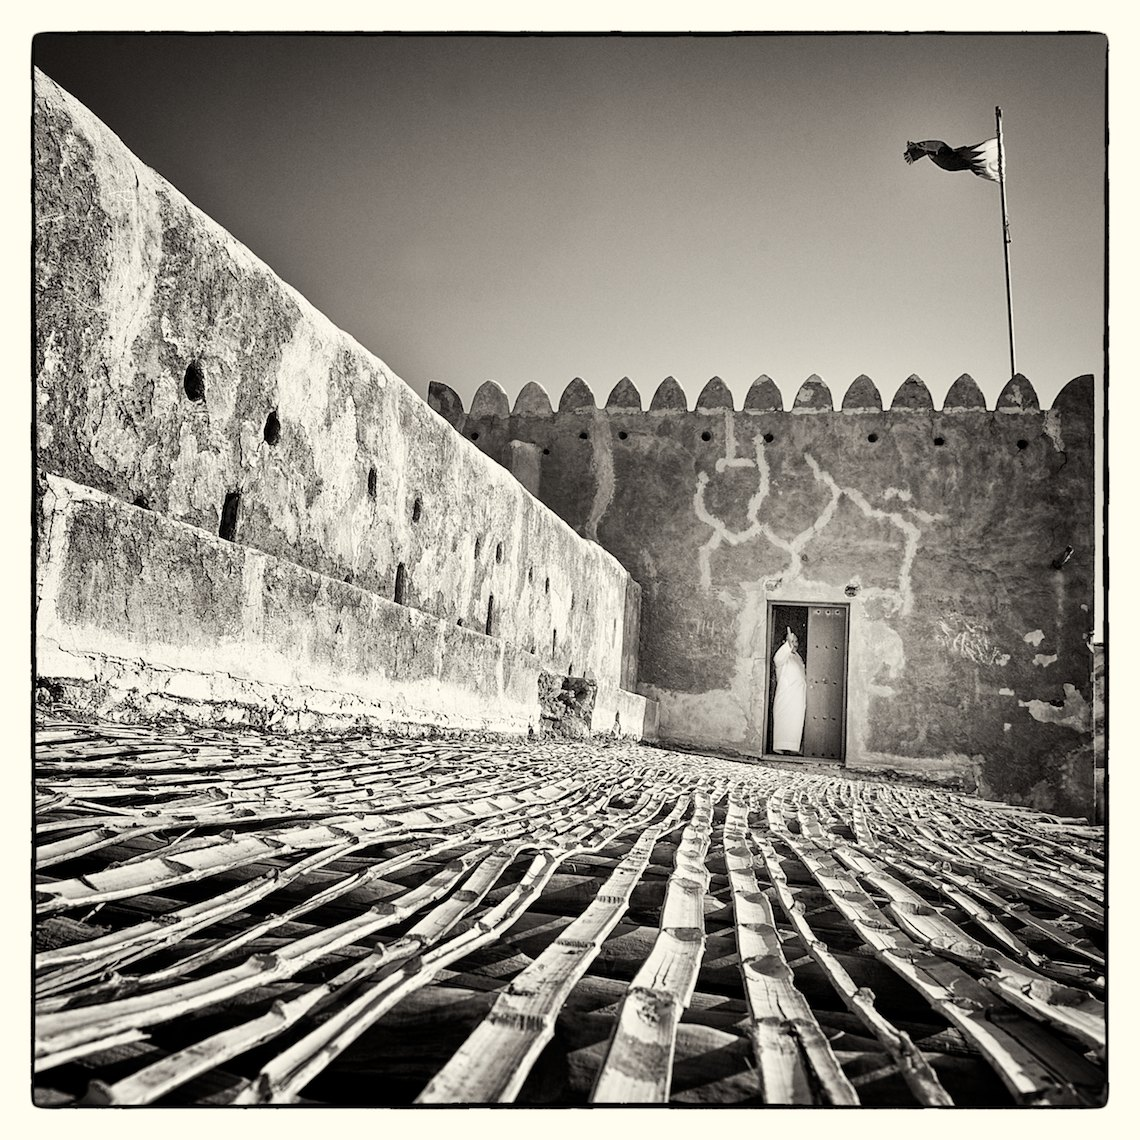 Qatar Fort Zubara restoration